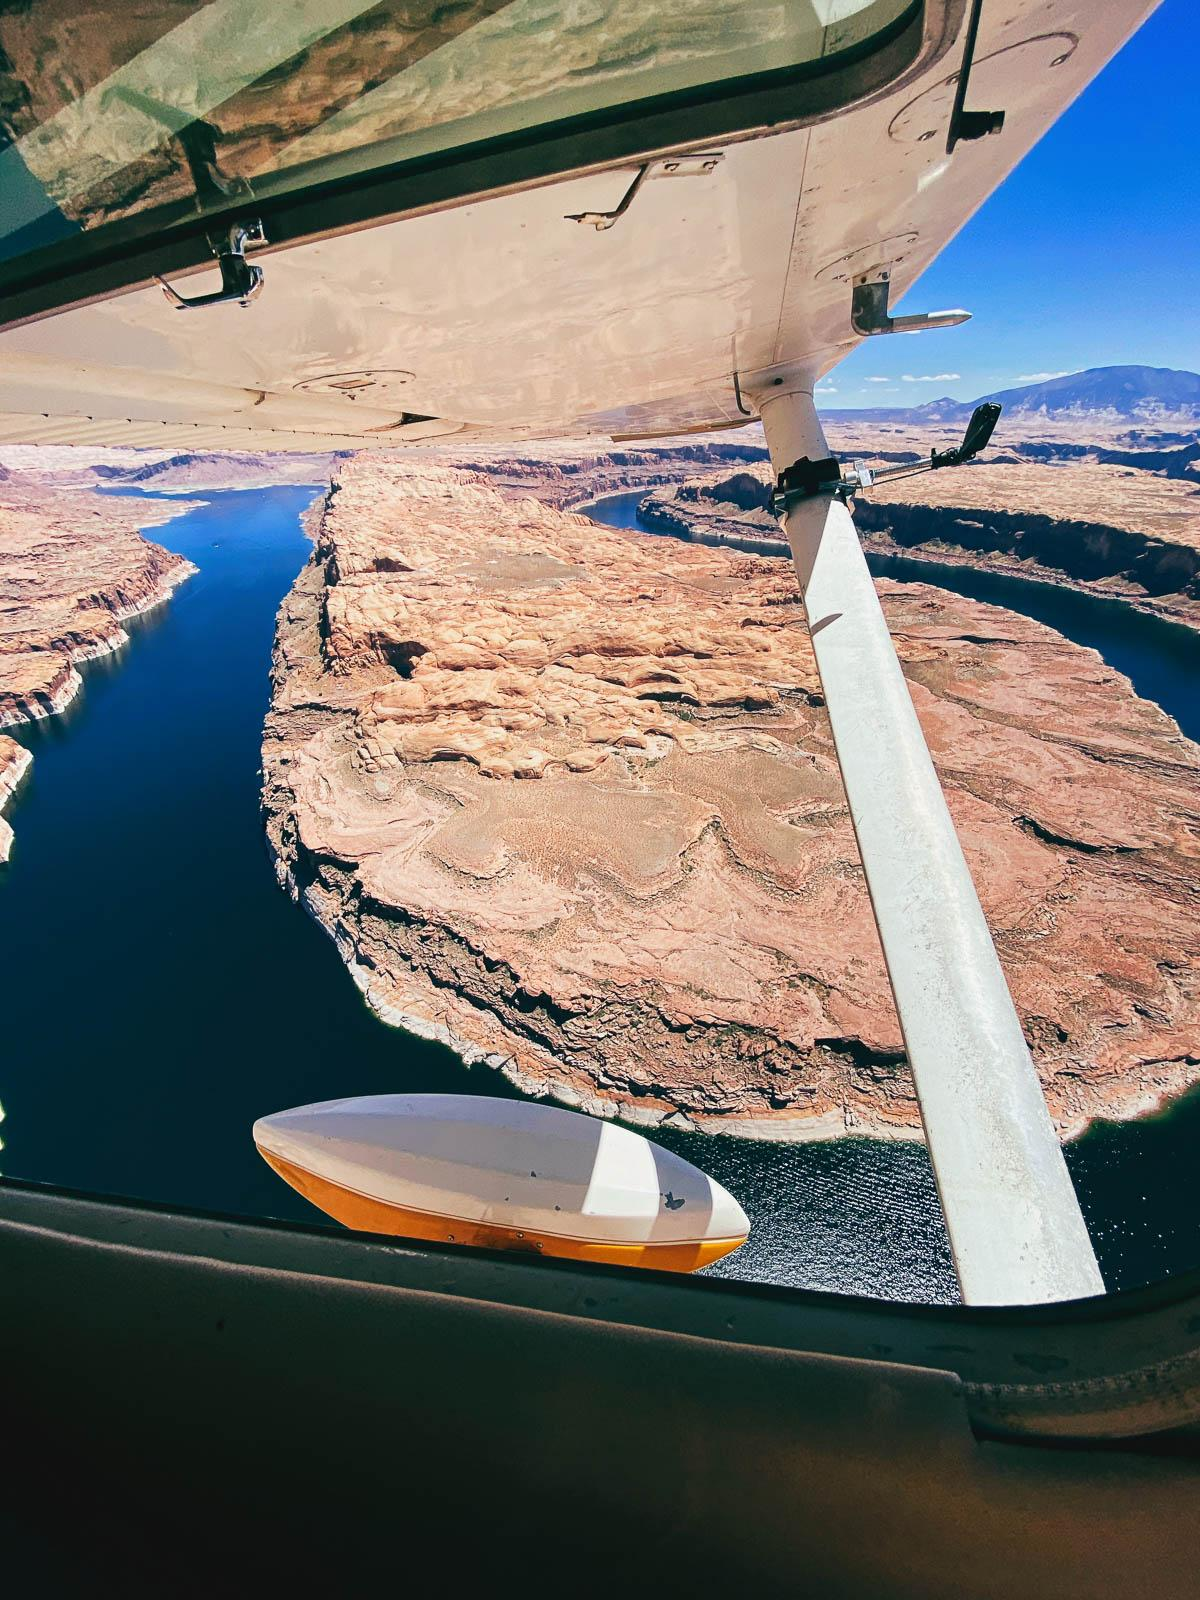 Here we go, Lake Powell!